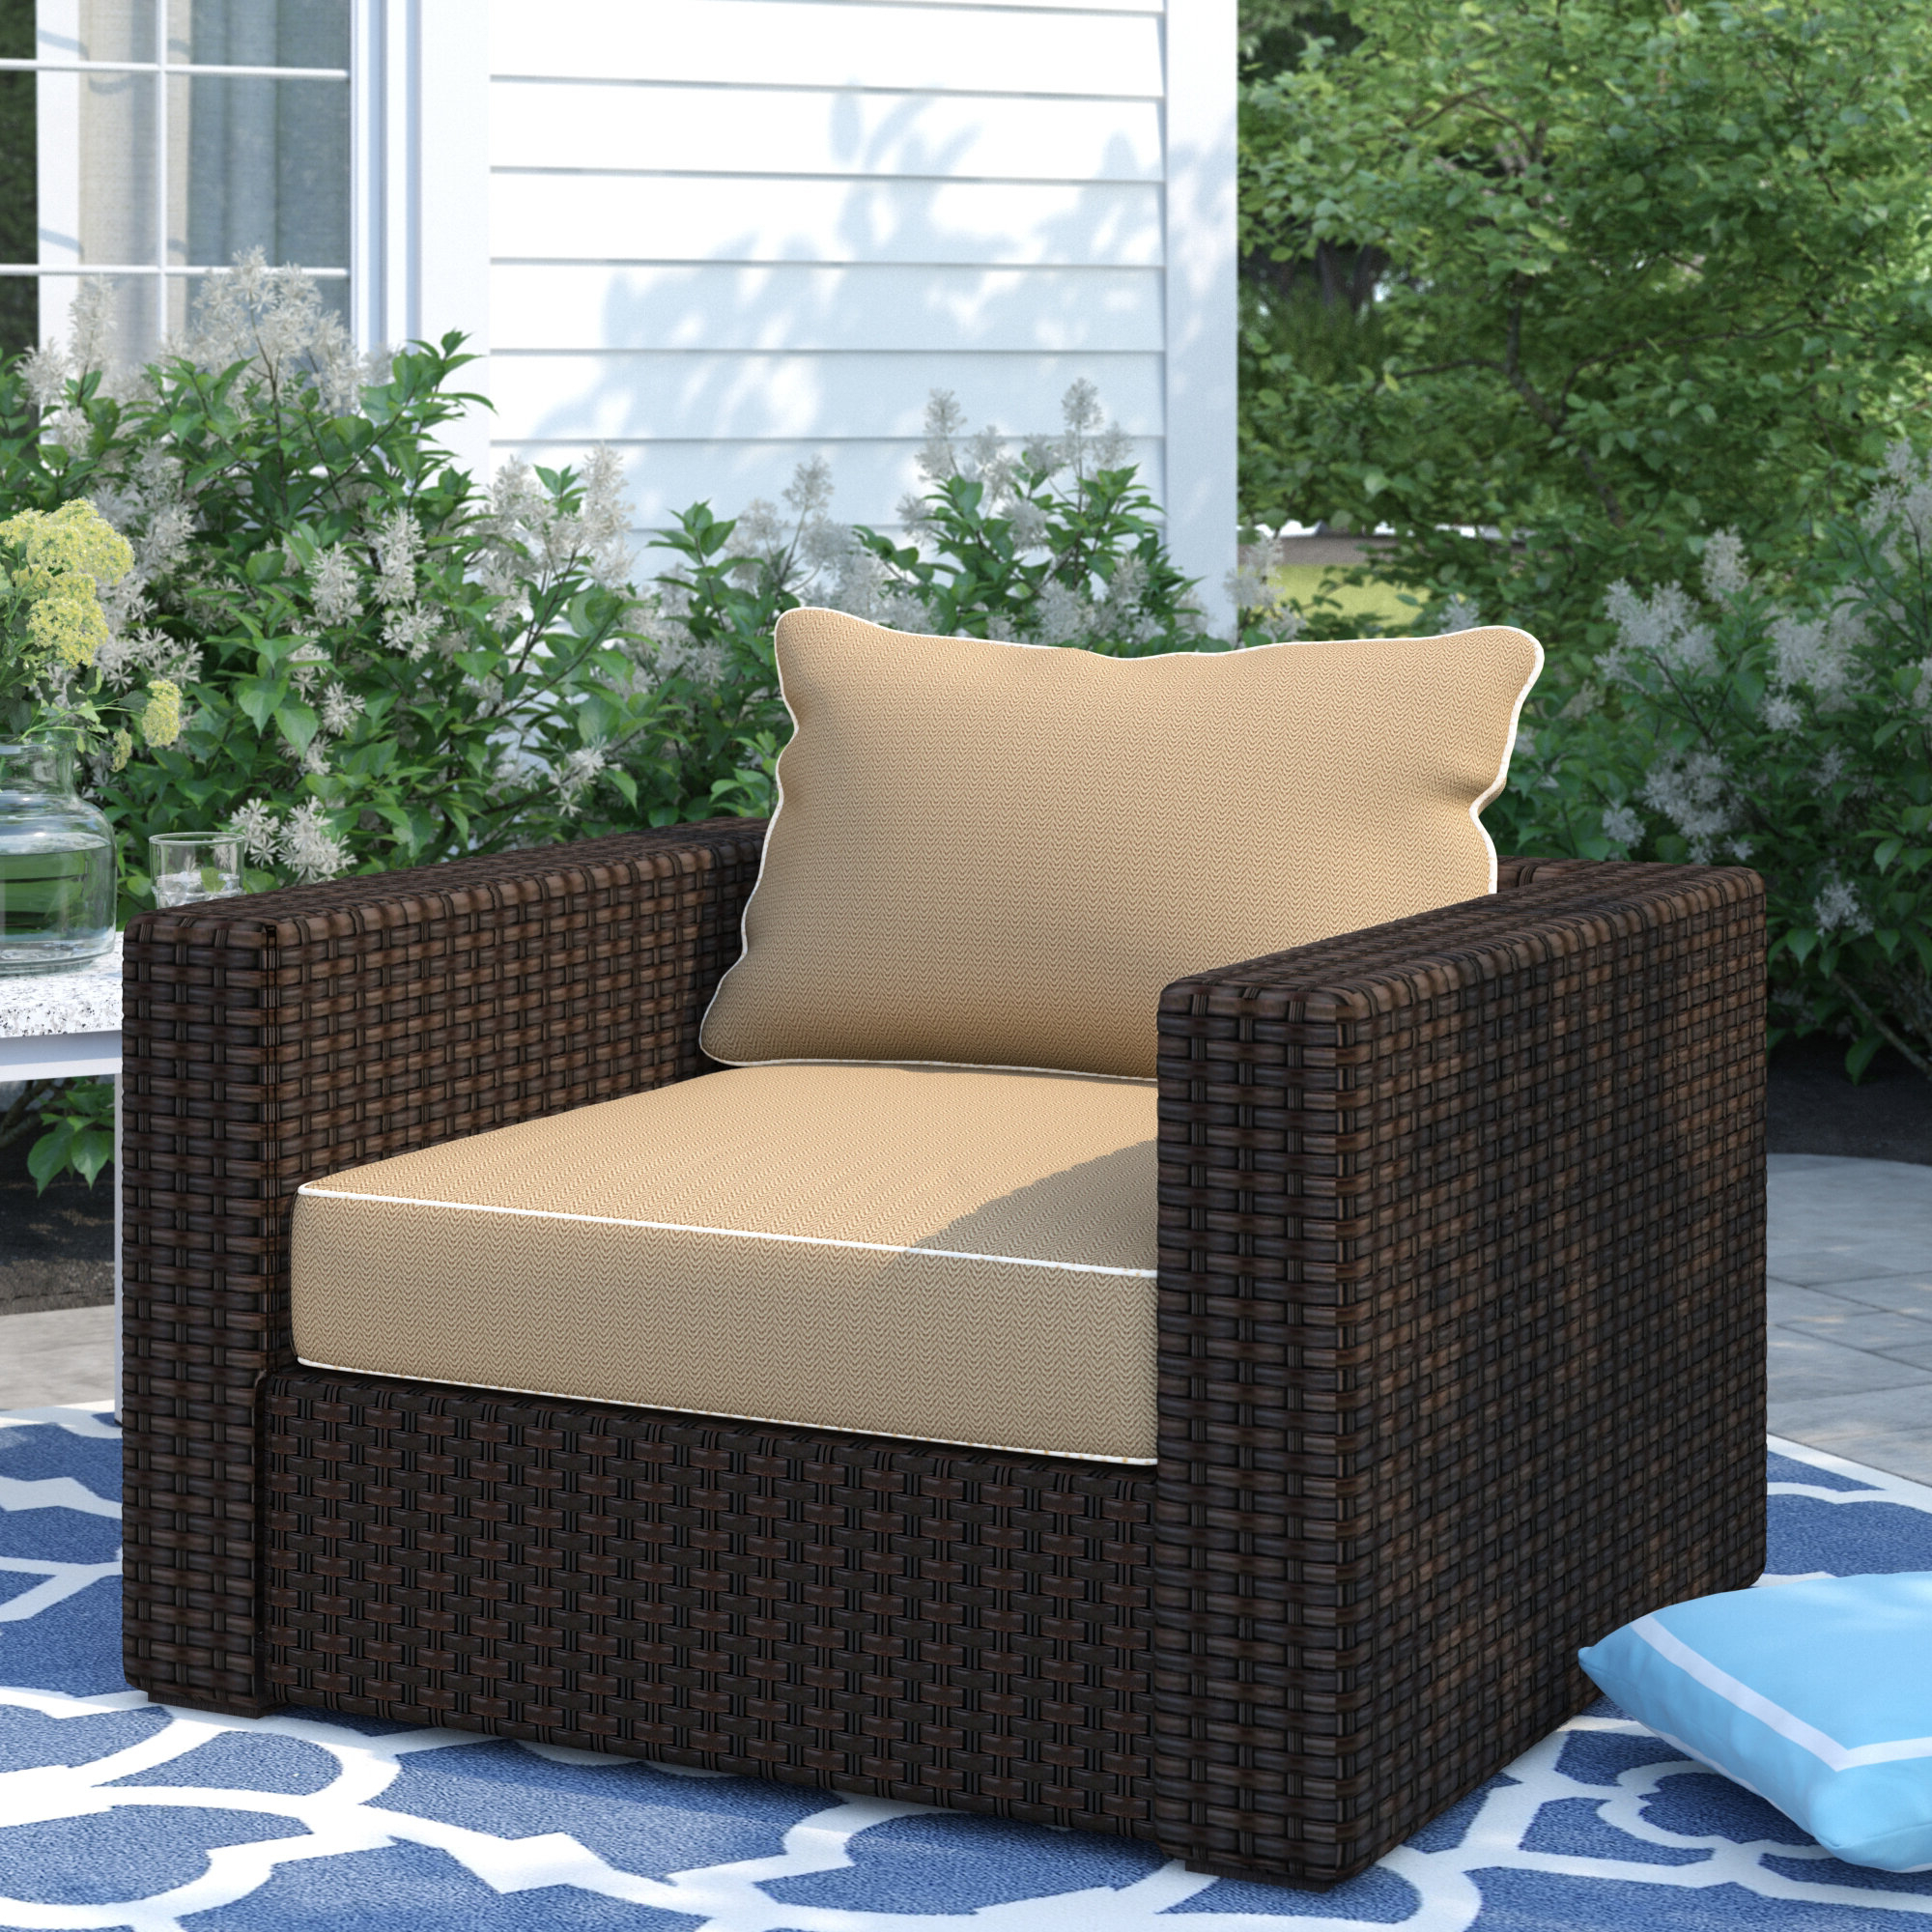 Fashionable Dante Patio Chair With Cushions With Repp Patio Sofas With Cushion (View 20 of 25)